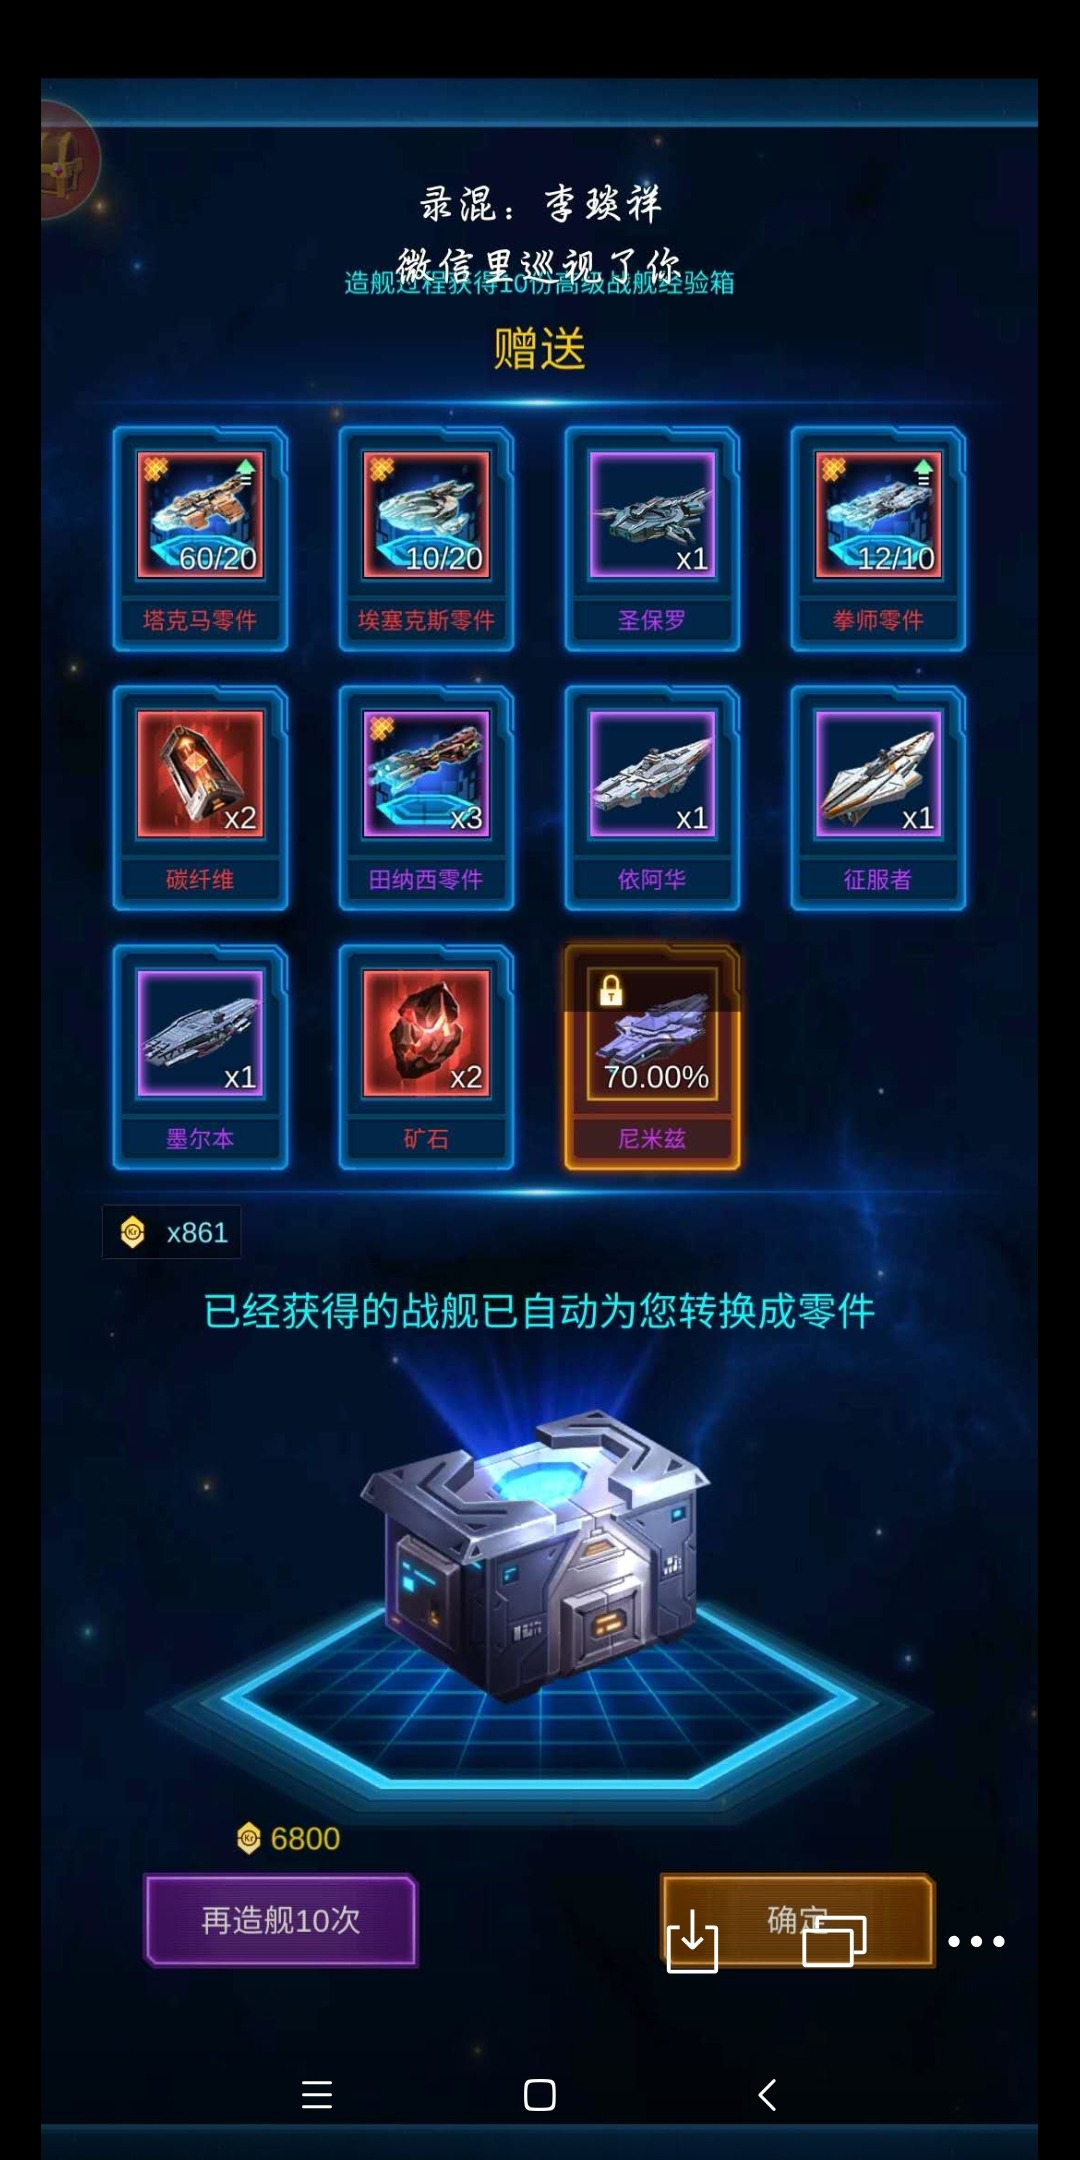 Screenshot_2020-03-11-10-52-26-698_com.tencent.mm.jpg